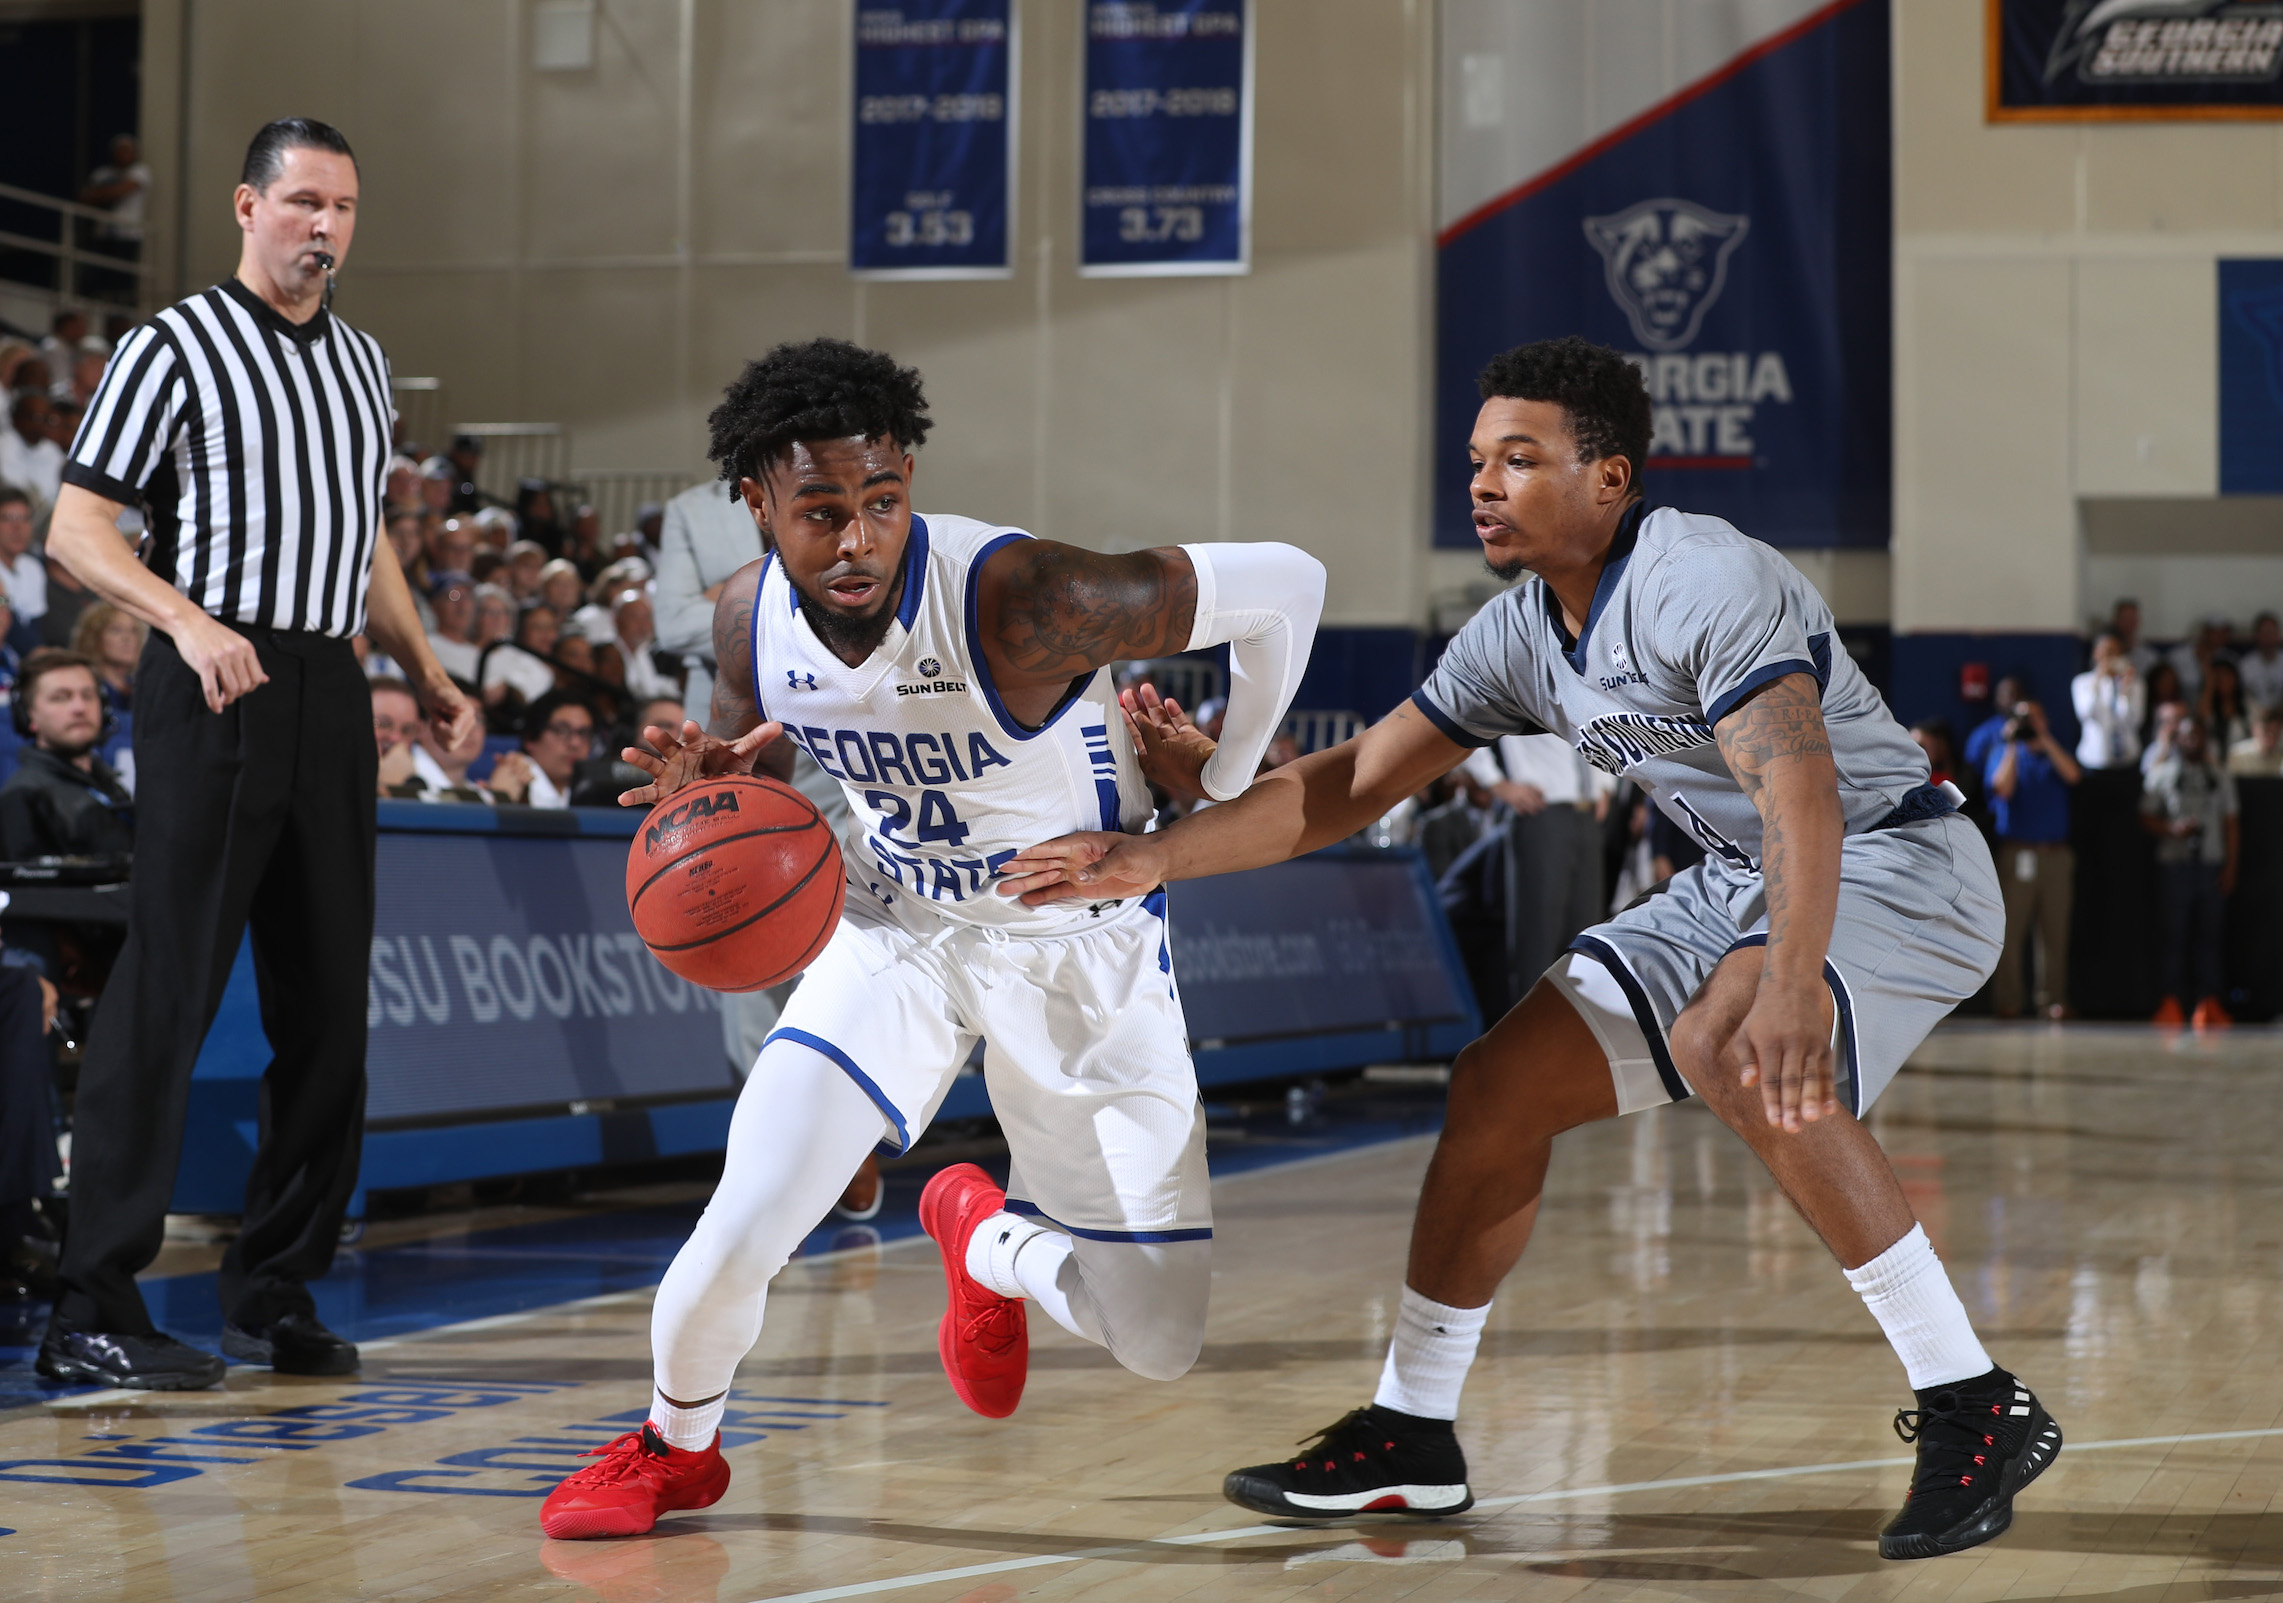 February 2, 2019 - Atlanta, Ga: Georgia State University men's basketball vs Georgia Southern Saturday, February 2, 2019, in Atlanta. (JASON GETZ/ Getz Images)